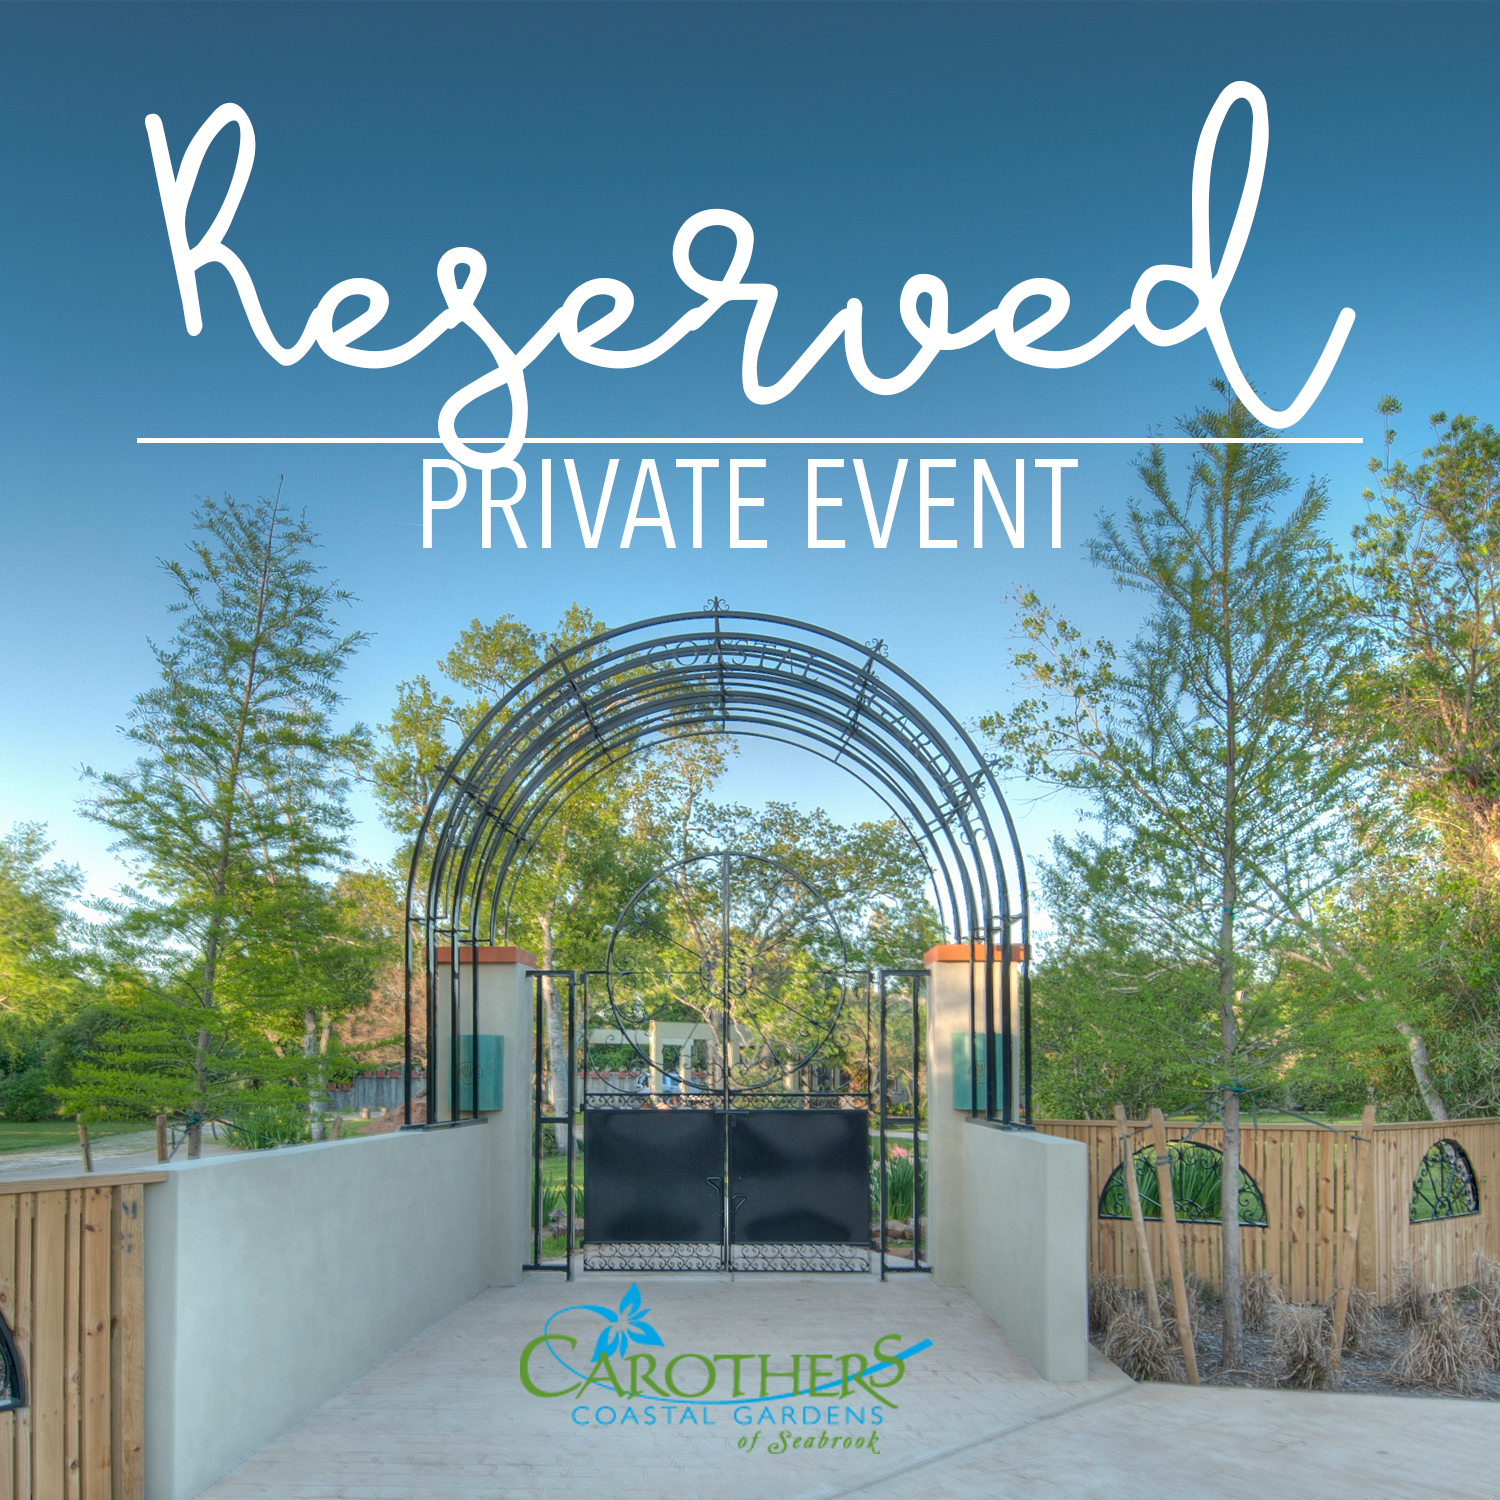 Carothers - Reserved Private Event Calendar Graphic.jpg